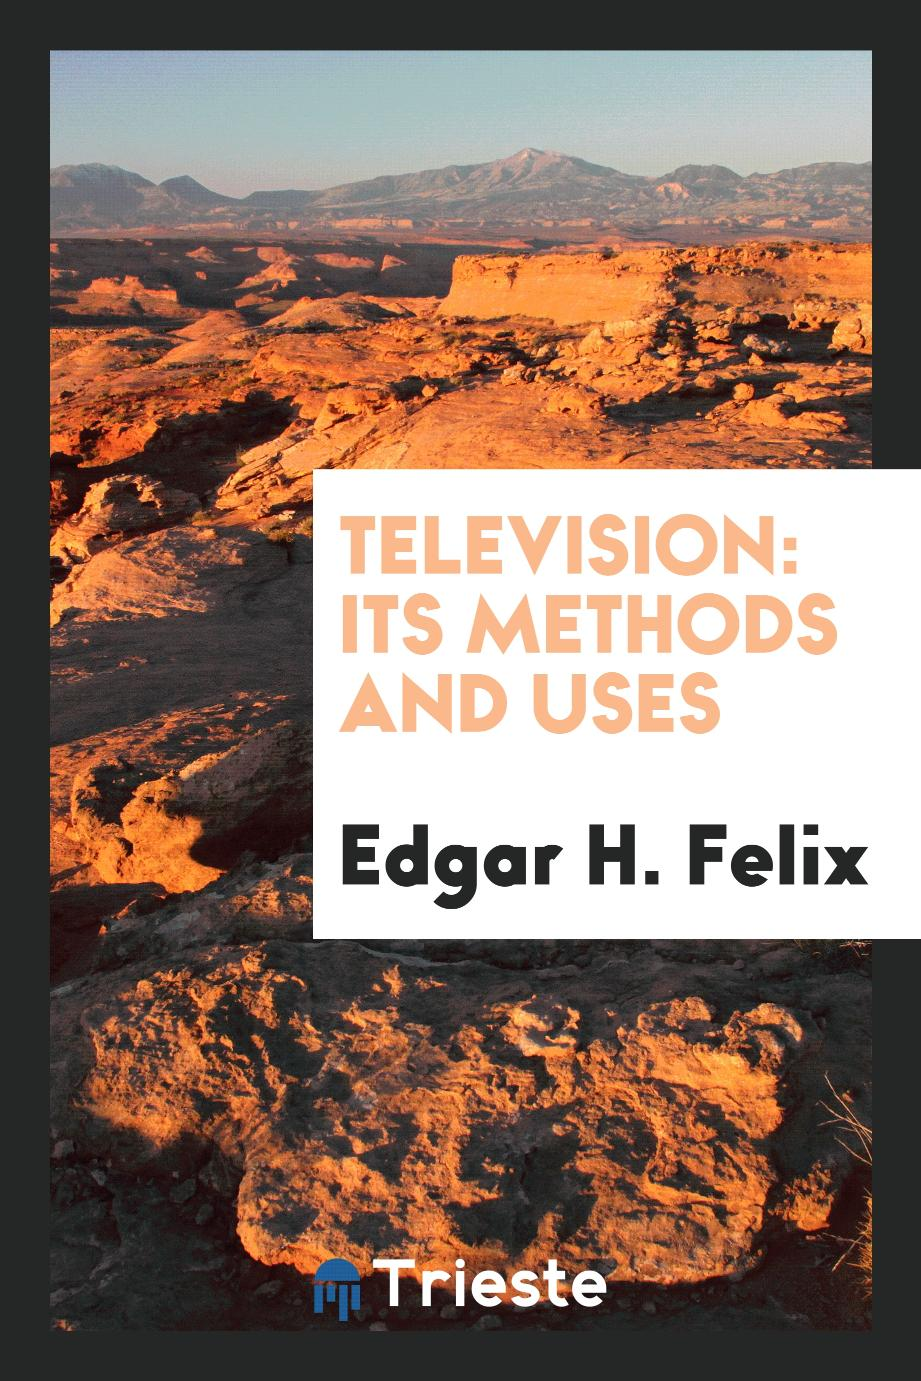 Television: its methods and uses